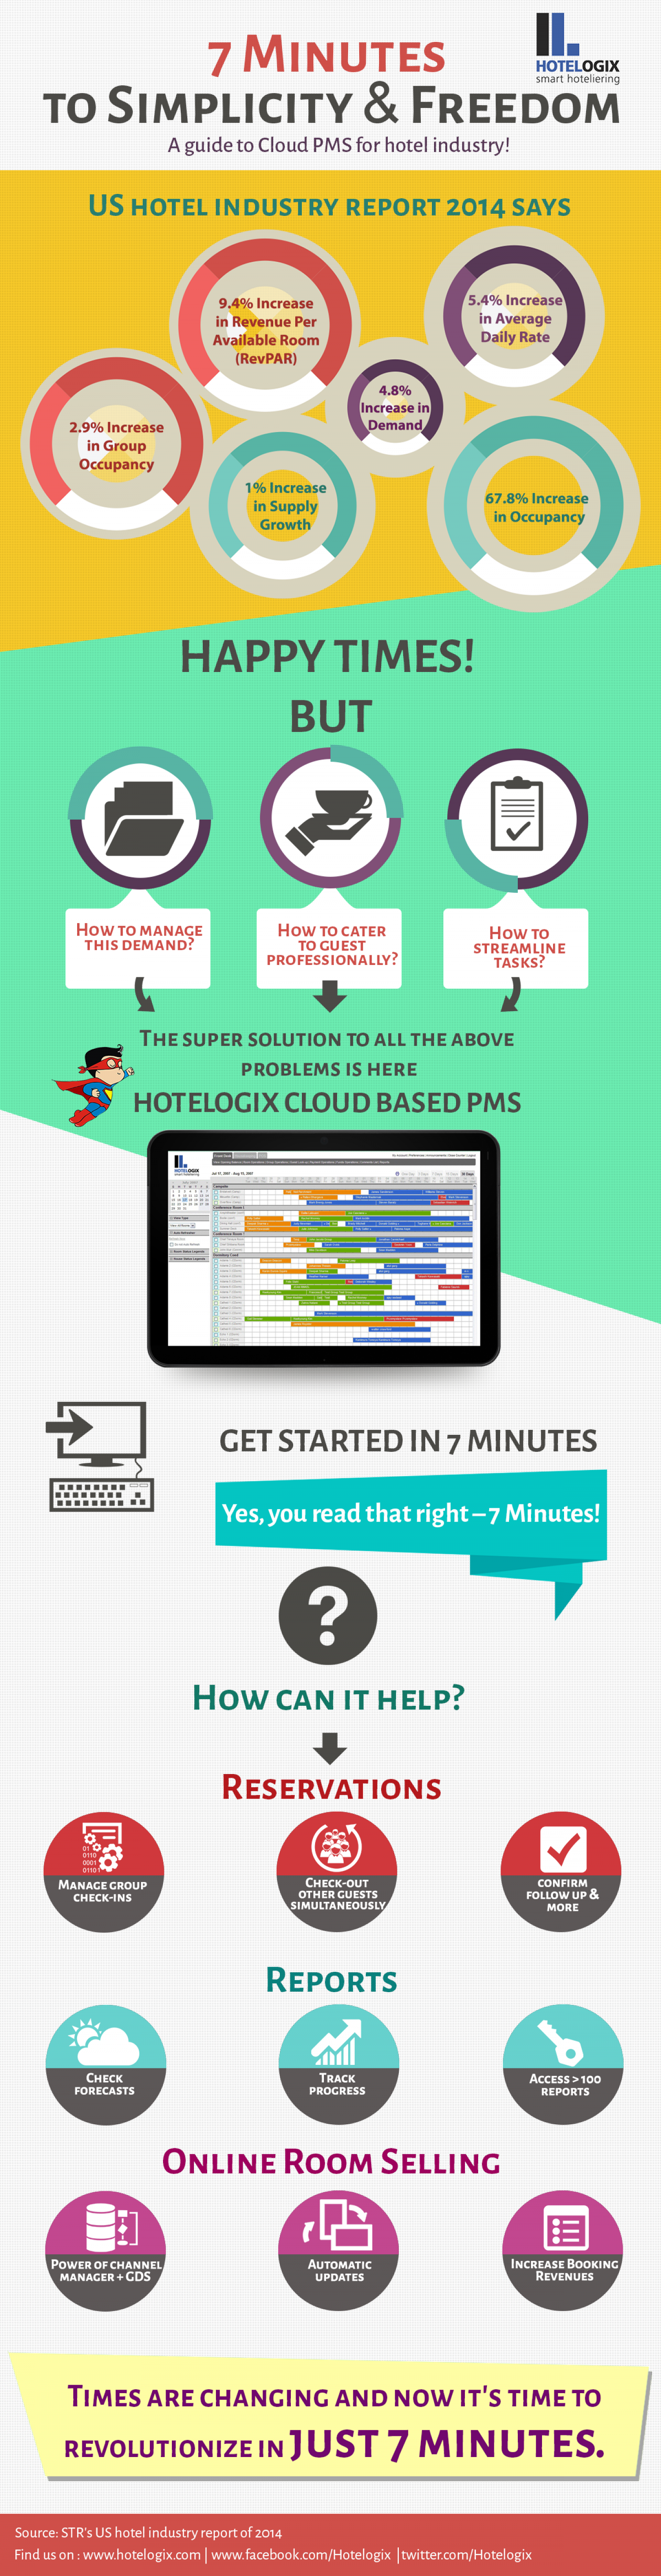 7 minutes to simplicity & freedom - A guide to cloud PMS Infographic